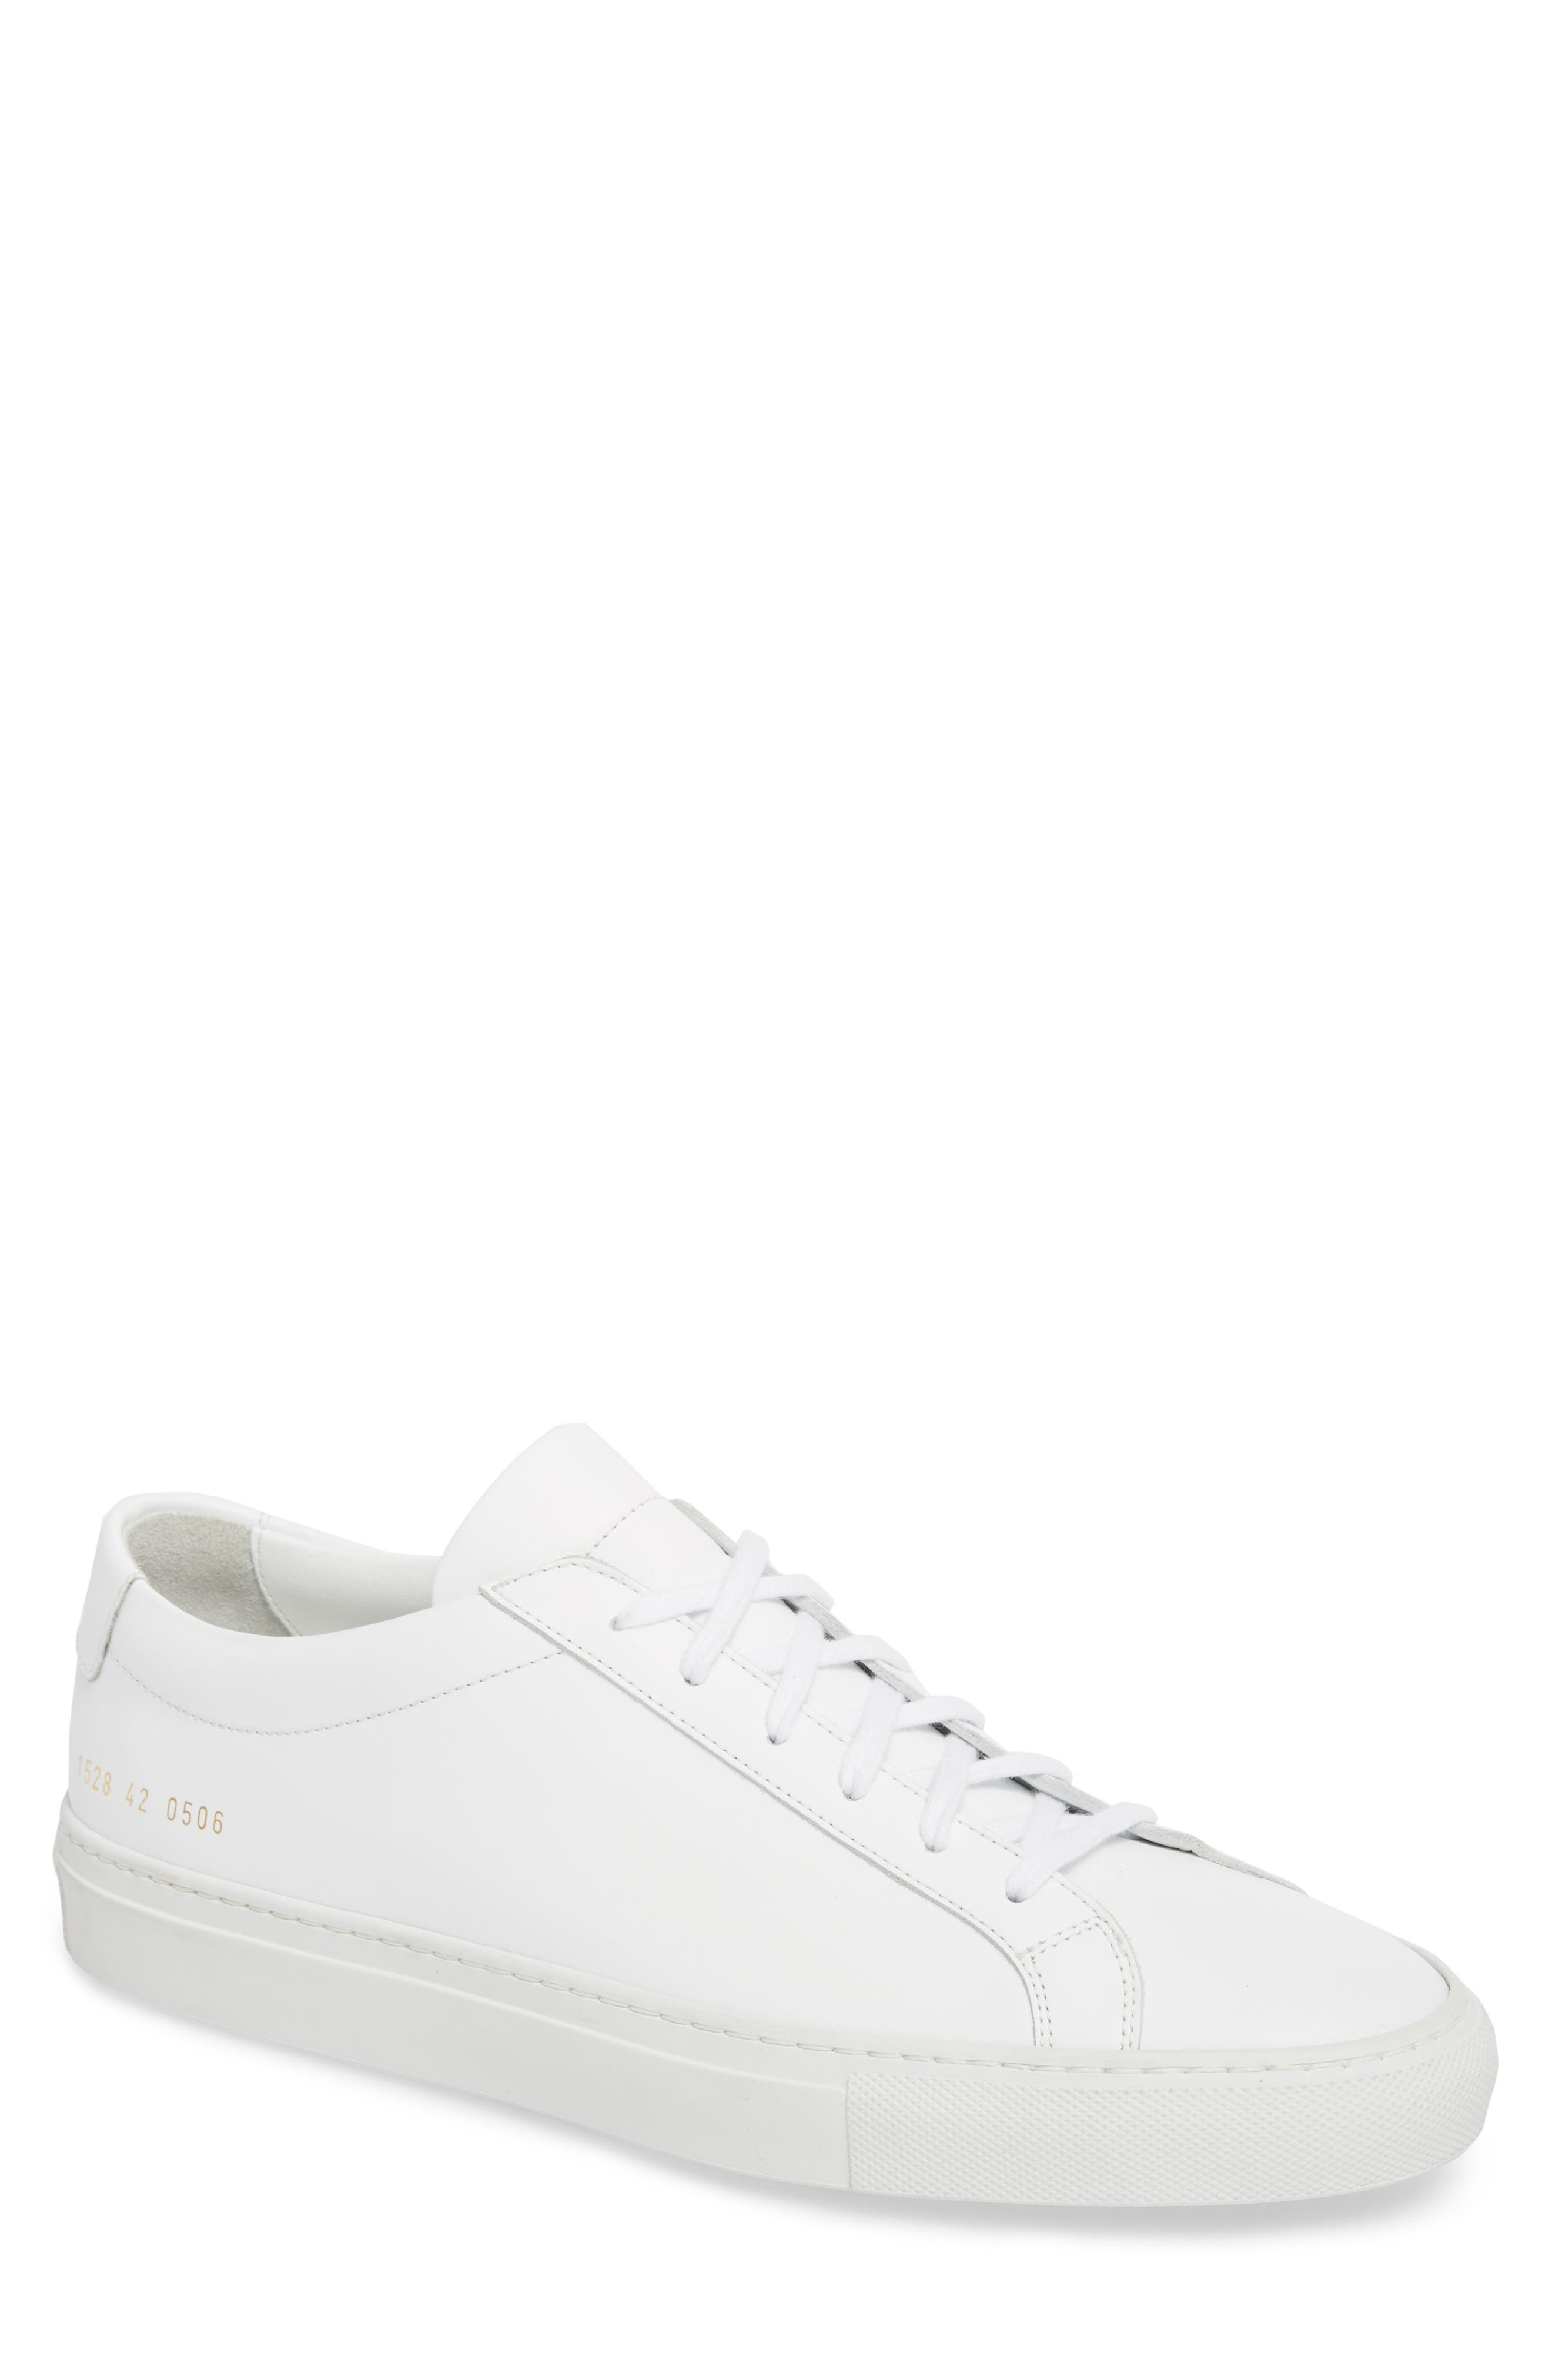 Original Achilles Sneaker by Common Projects